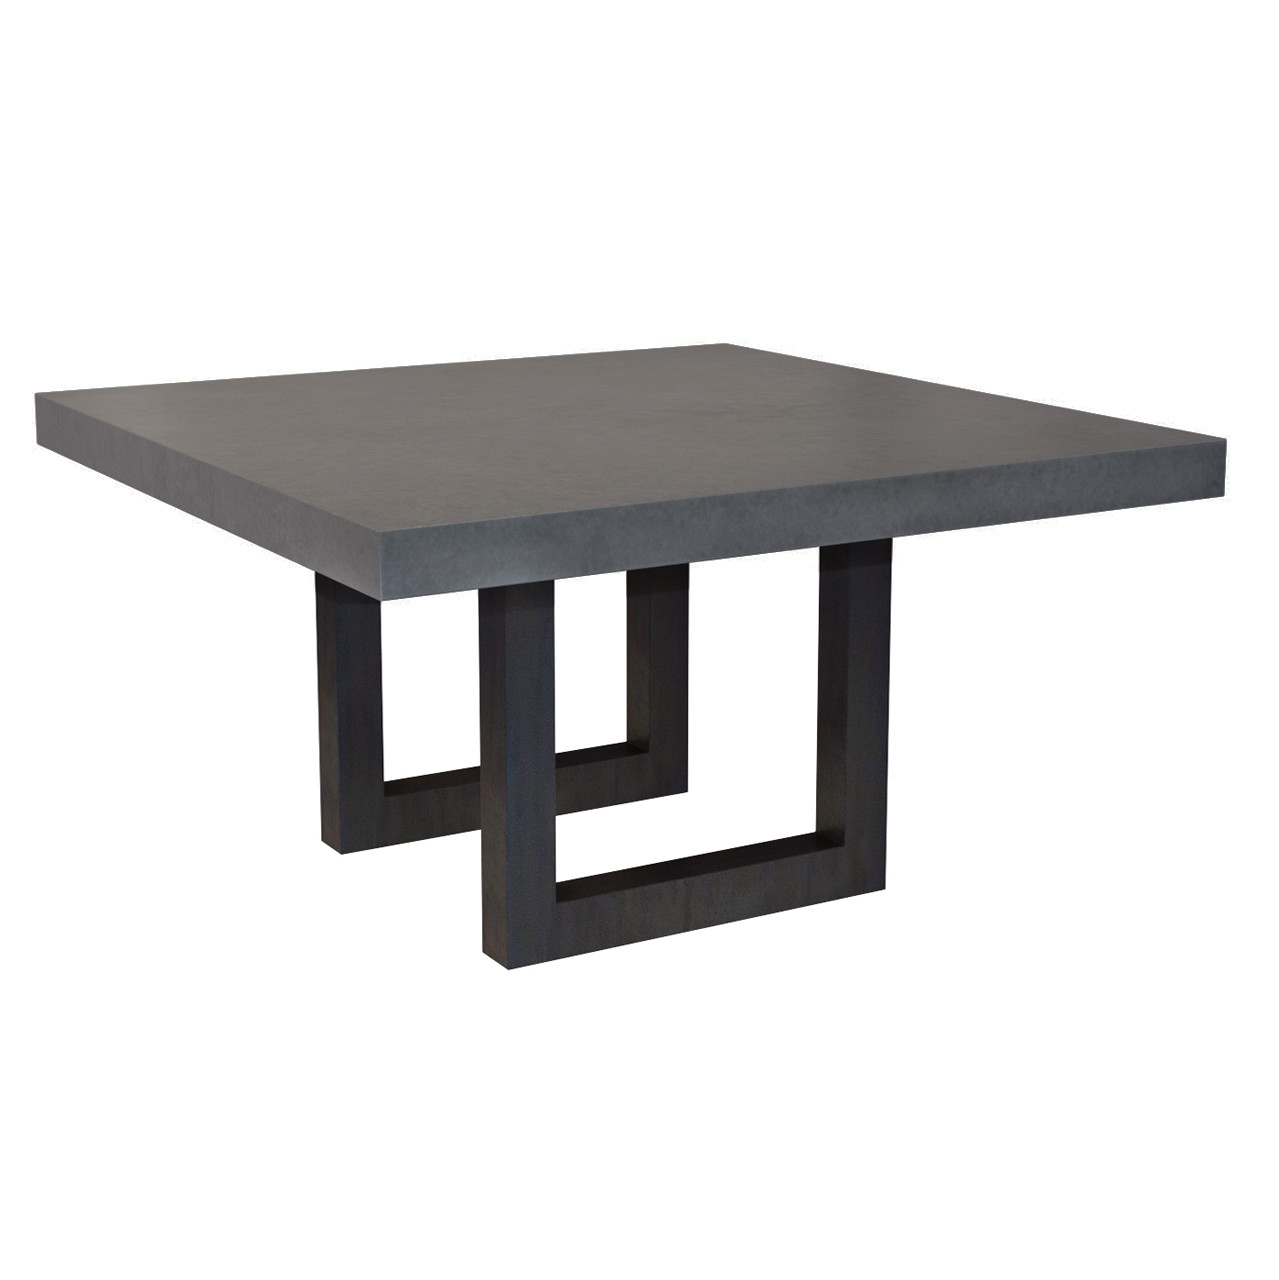 Concrete Dining Room Table: Square Zen Concrete Dining Table